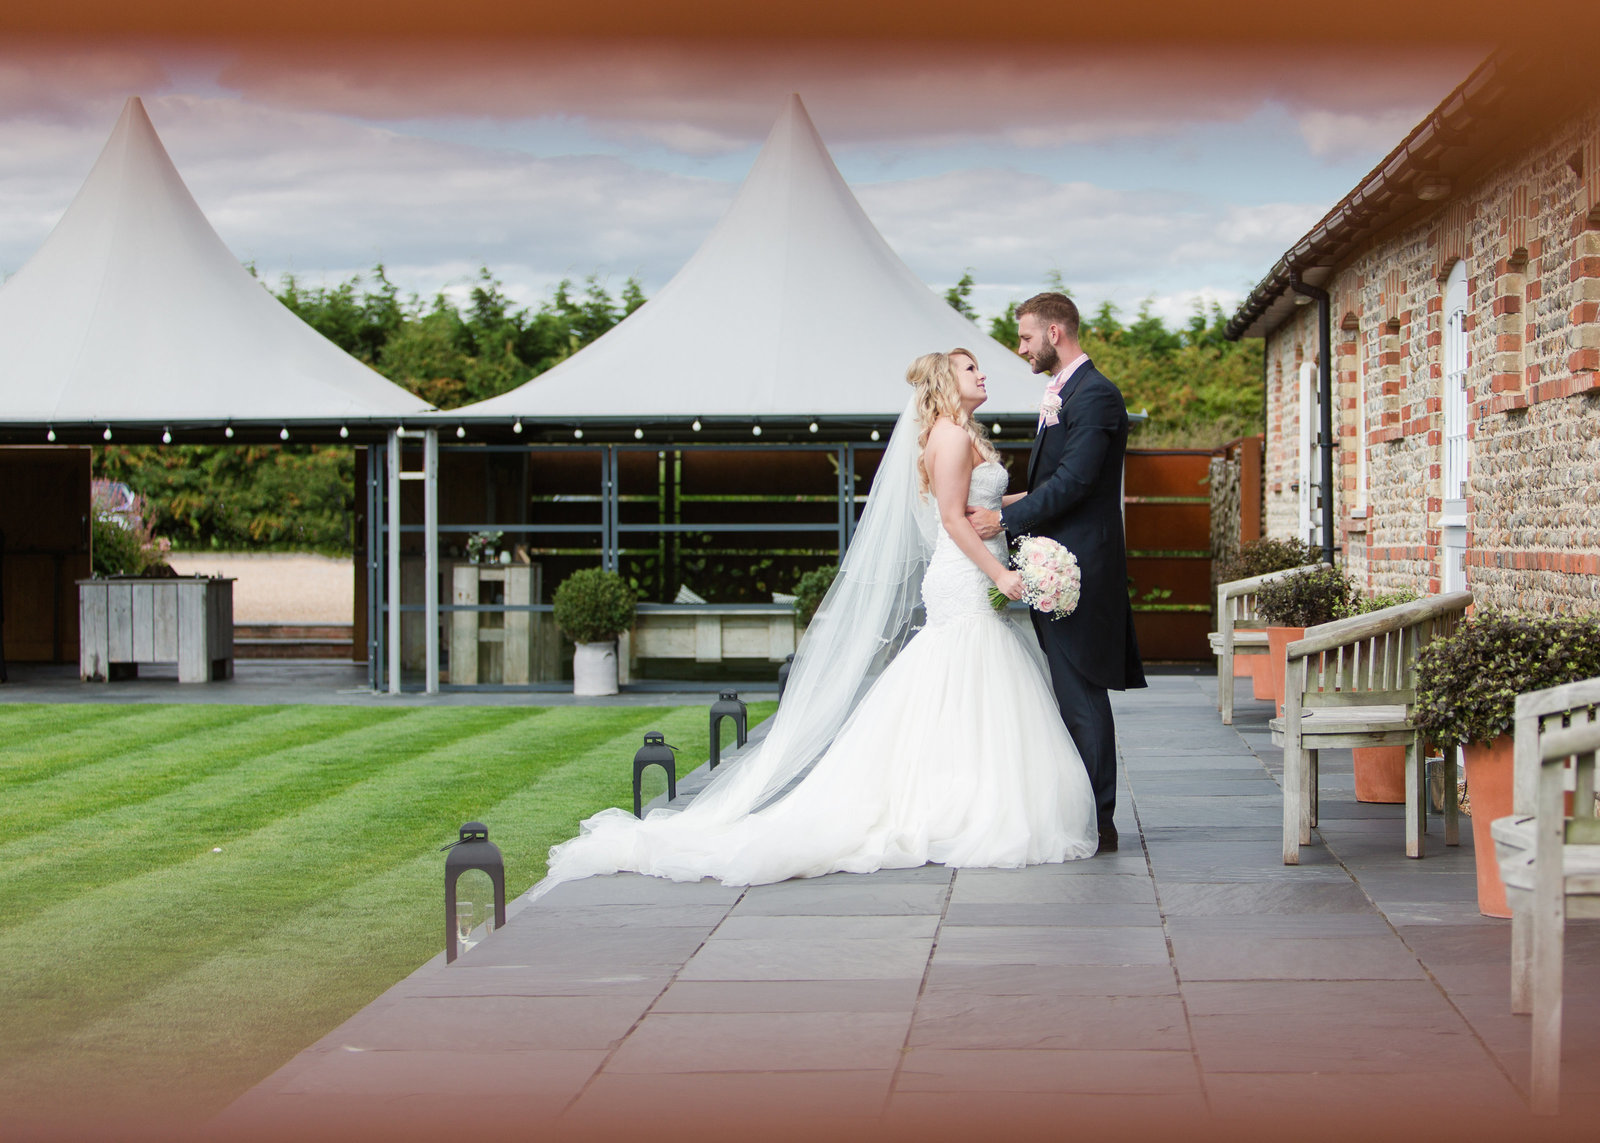 adorlee-0644-southend-barns-wedding-photographer-chichester-west-sussex